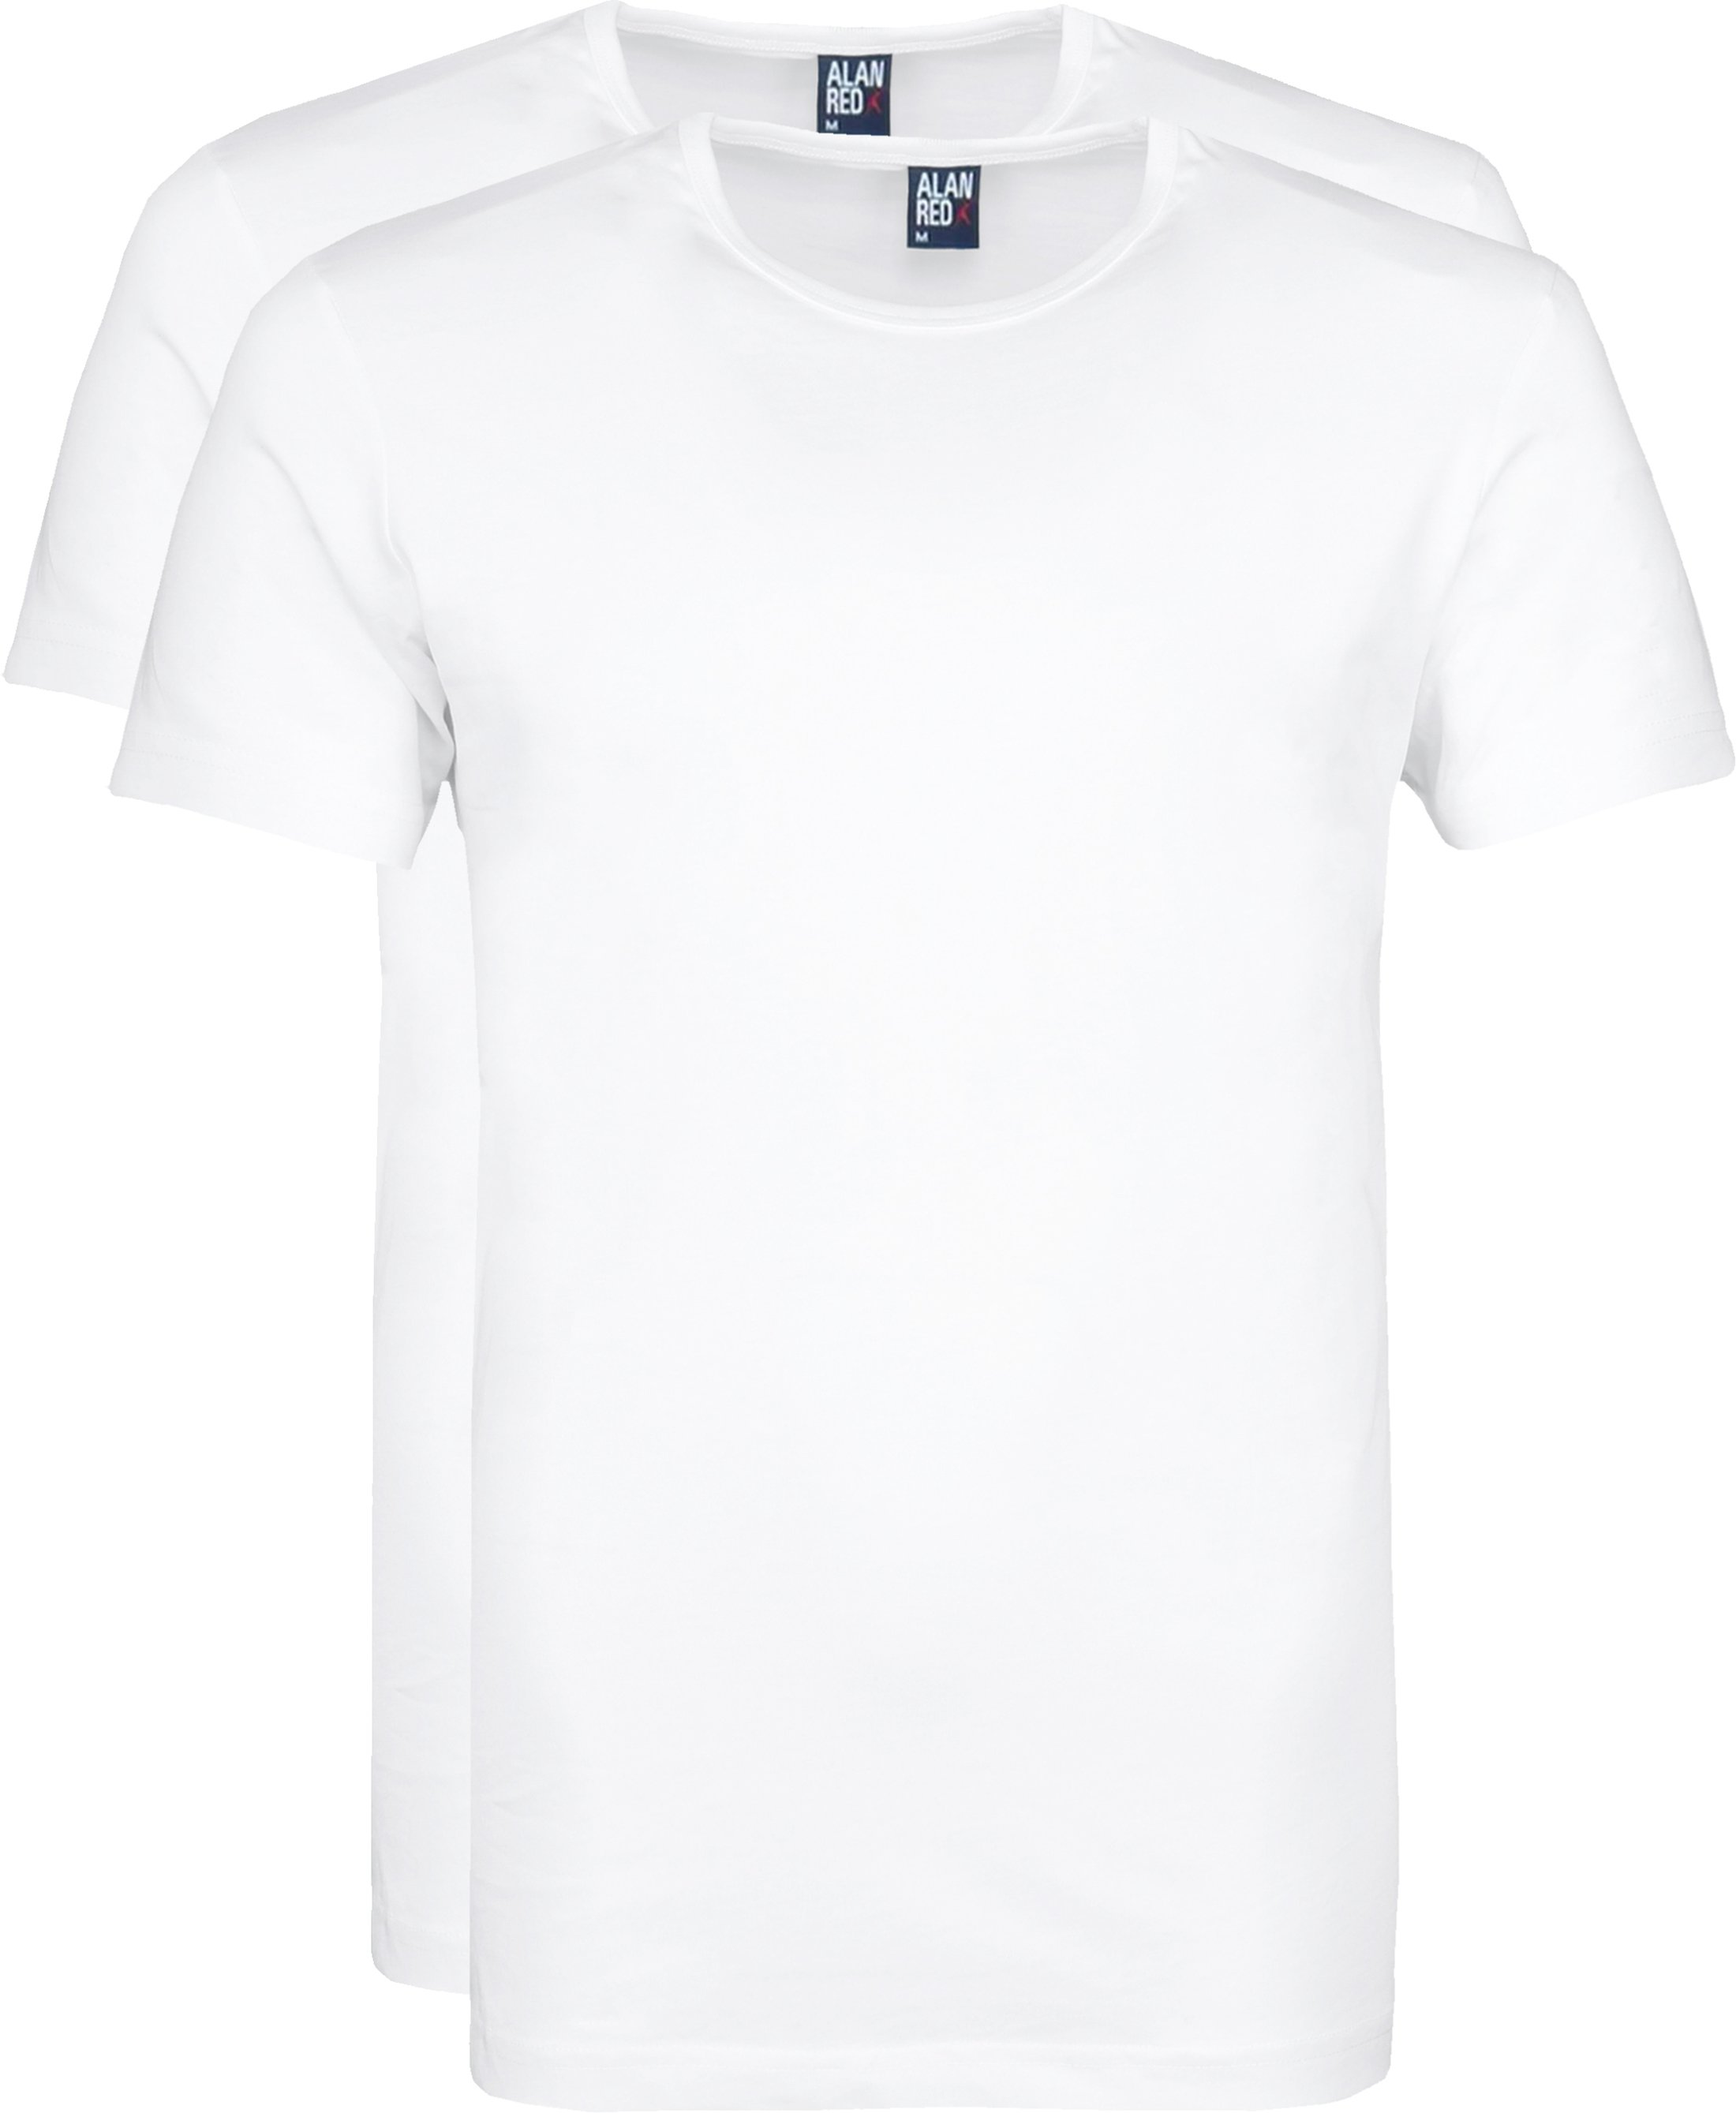 Alan Red Derby Round Neck T-shirt White 2-Pack foto 0